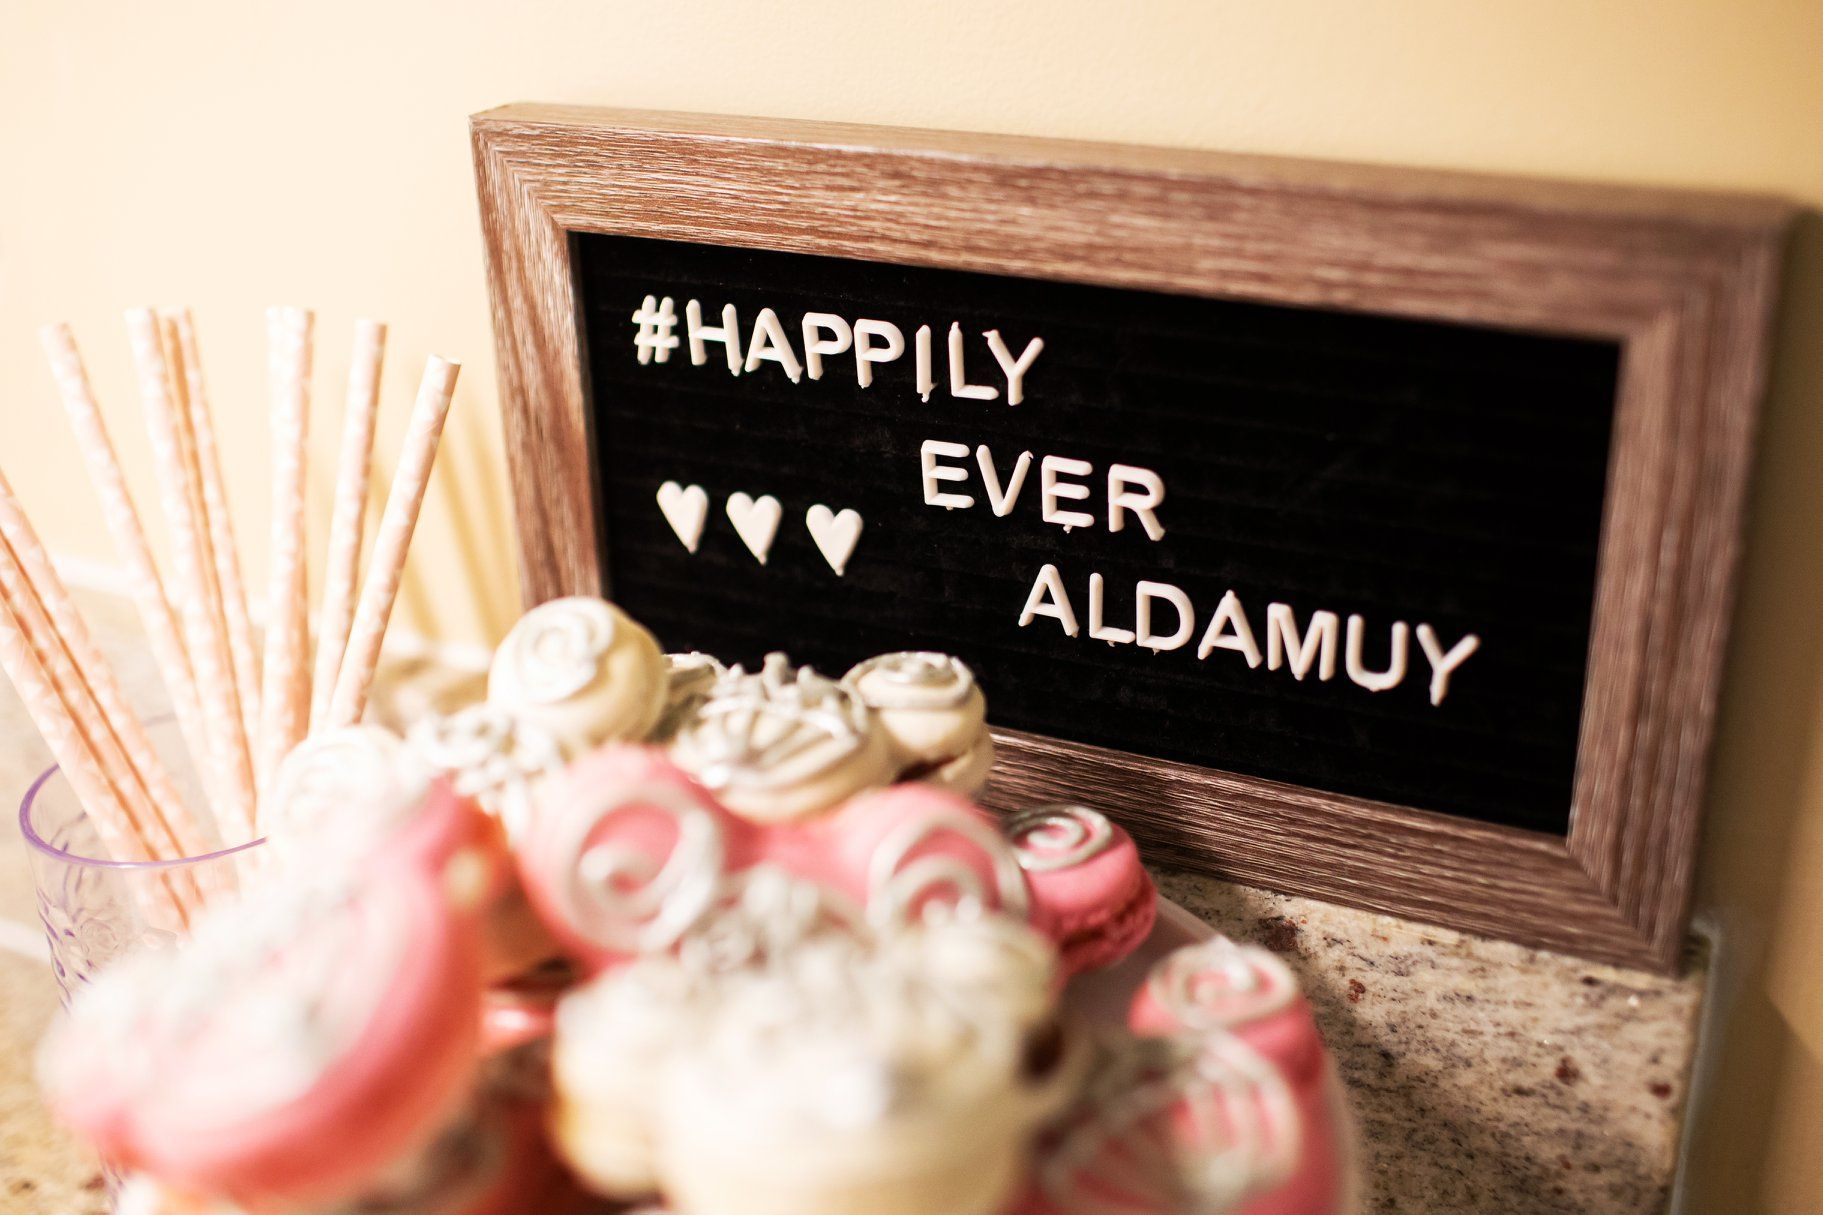 Letter boards are a great way to display your wedding